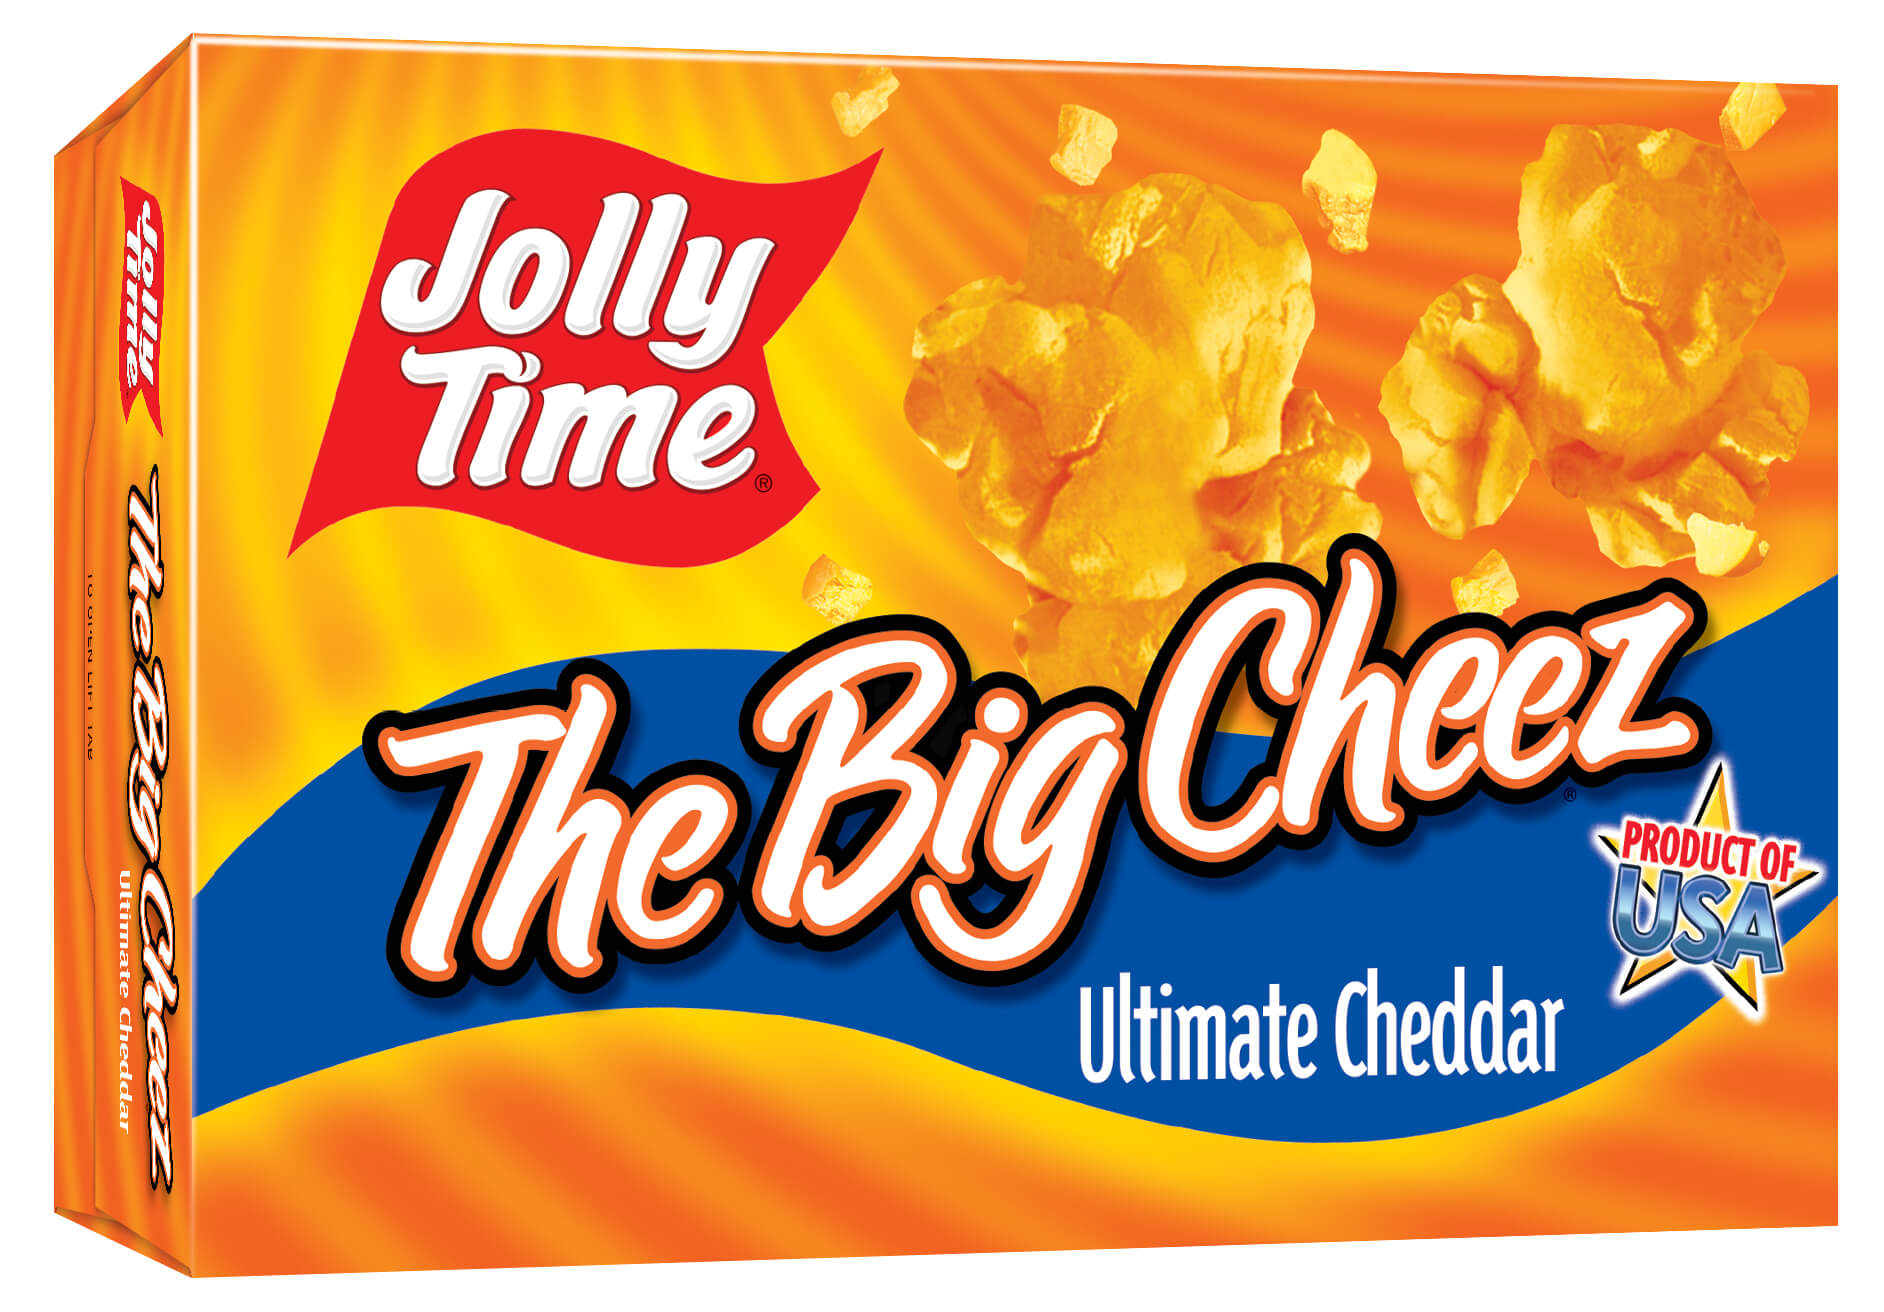 The Big Cheez